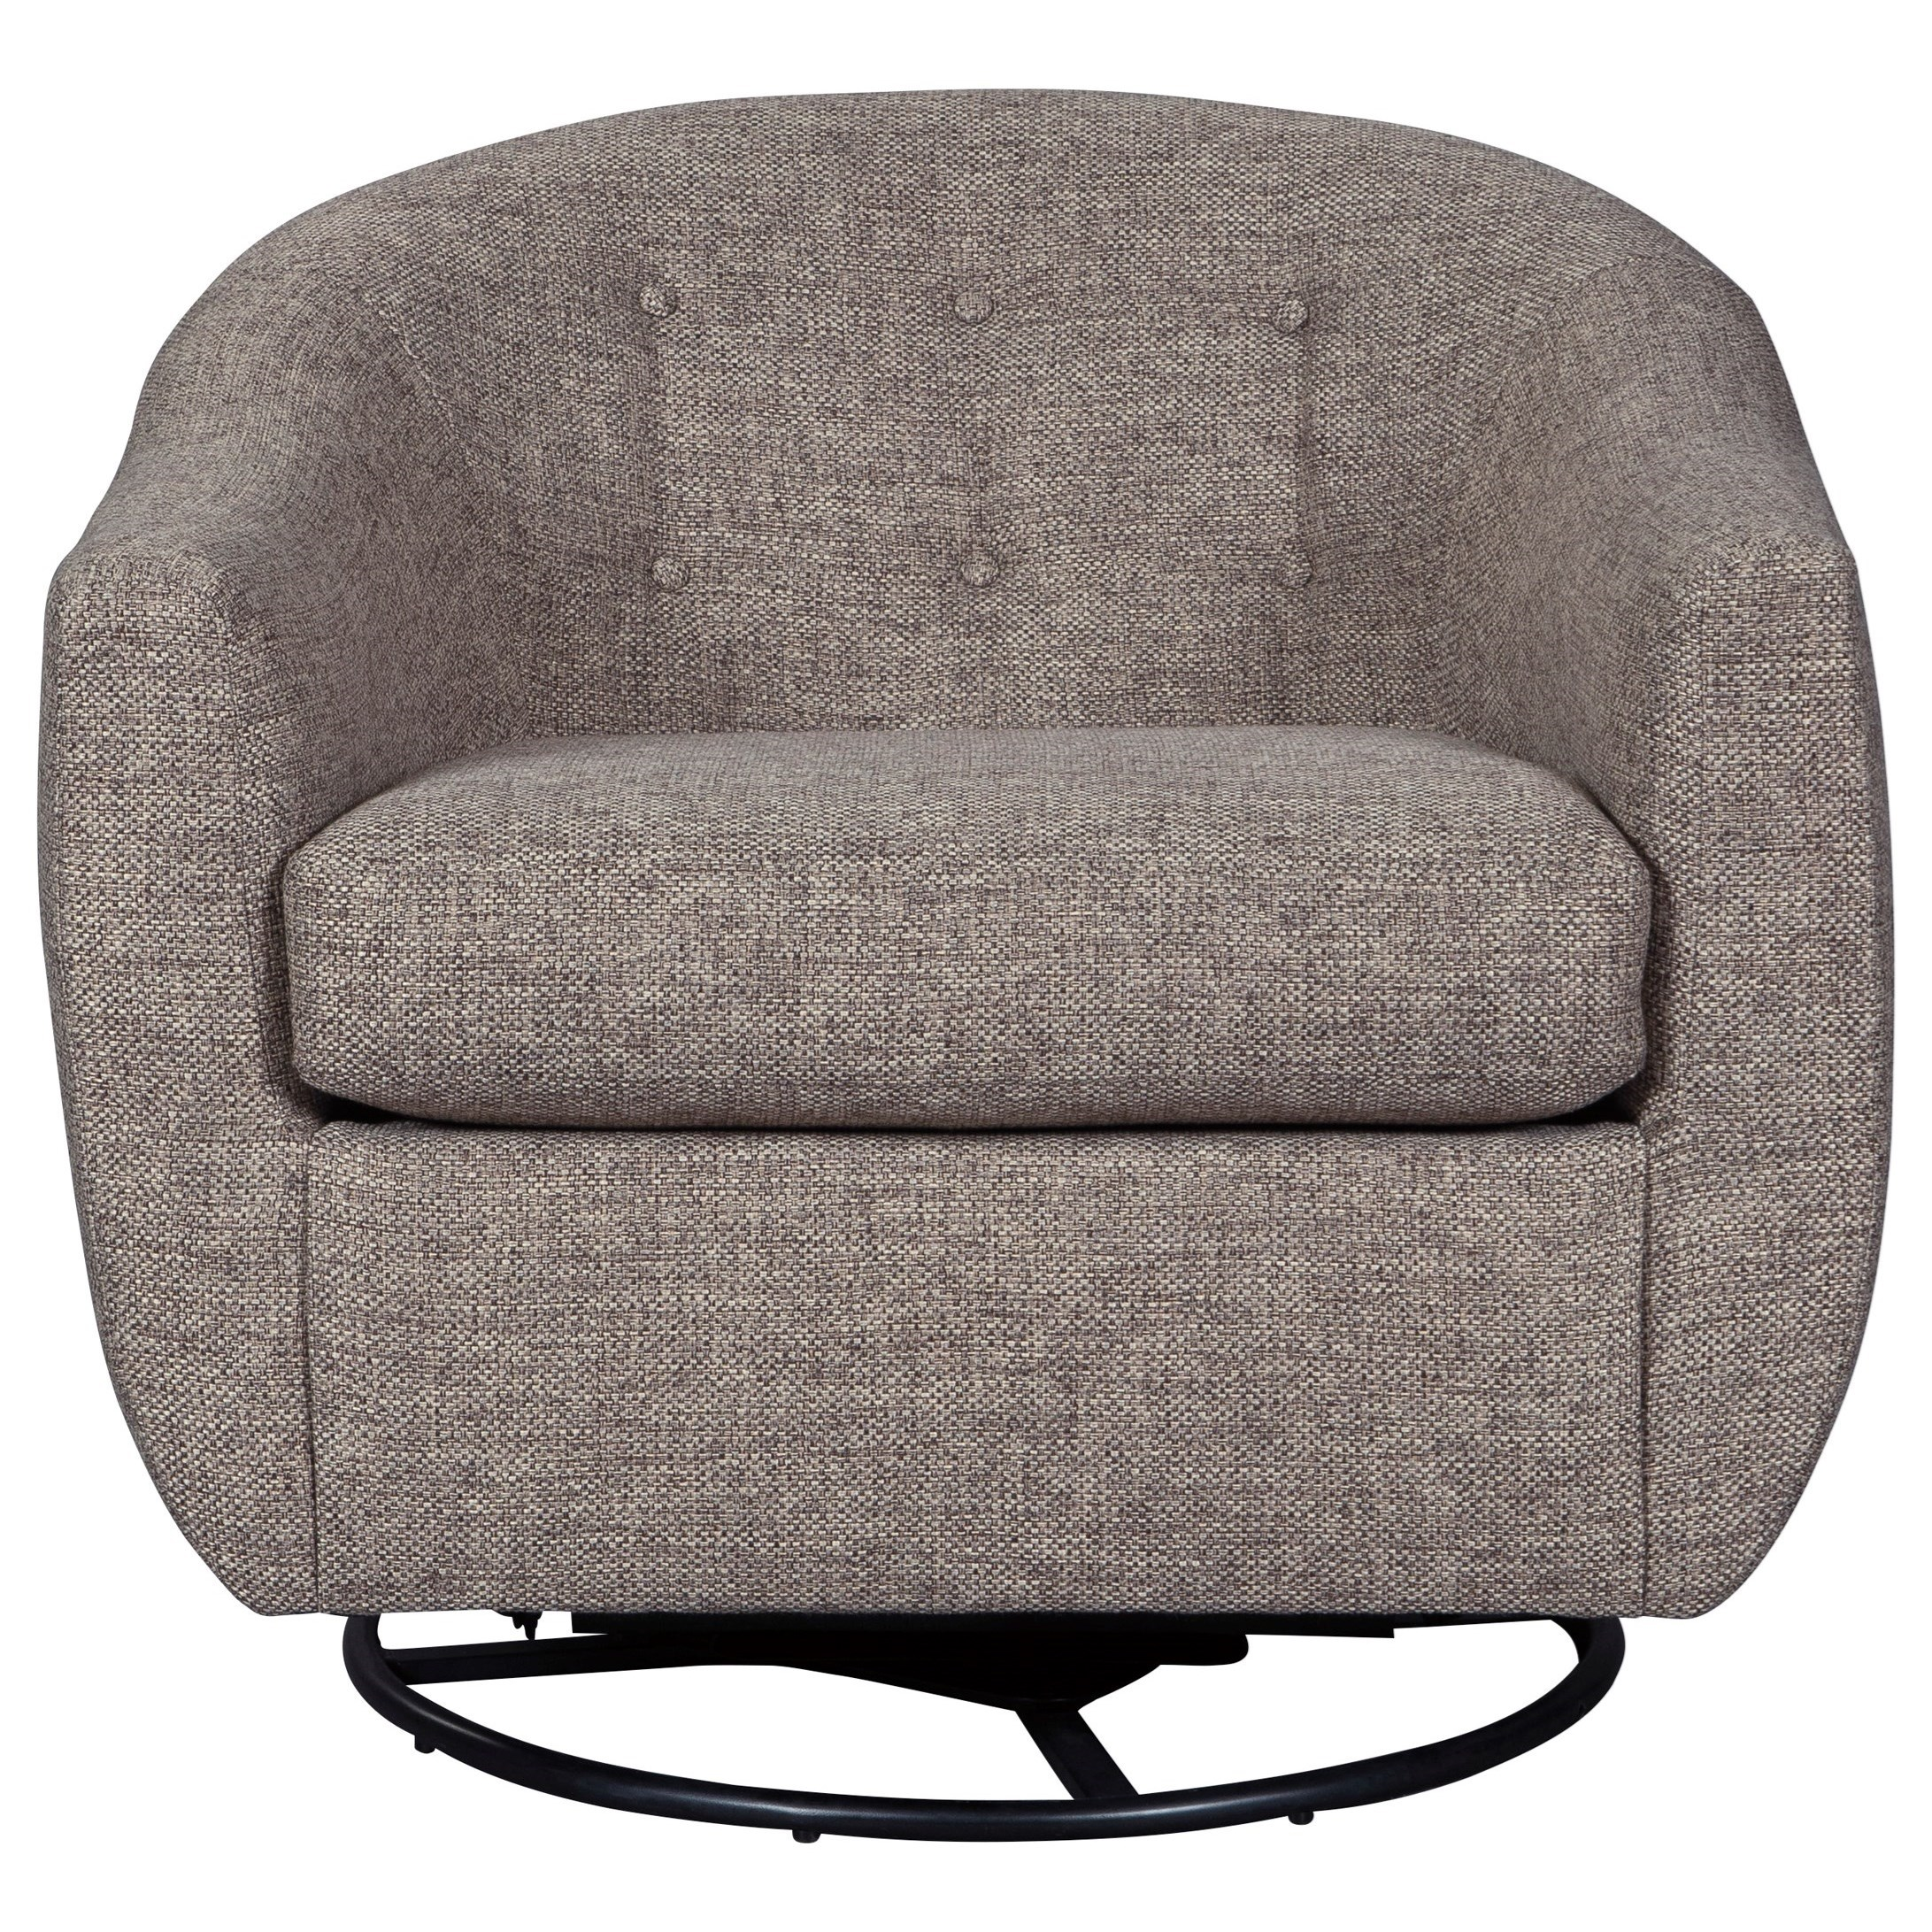 Upshur Swivel Glider Accent Chair by Signature at Walker's Furniture